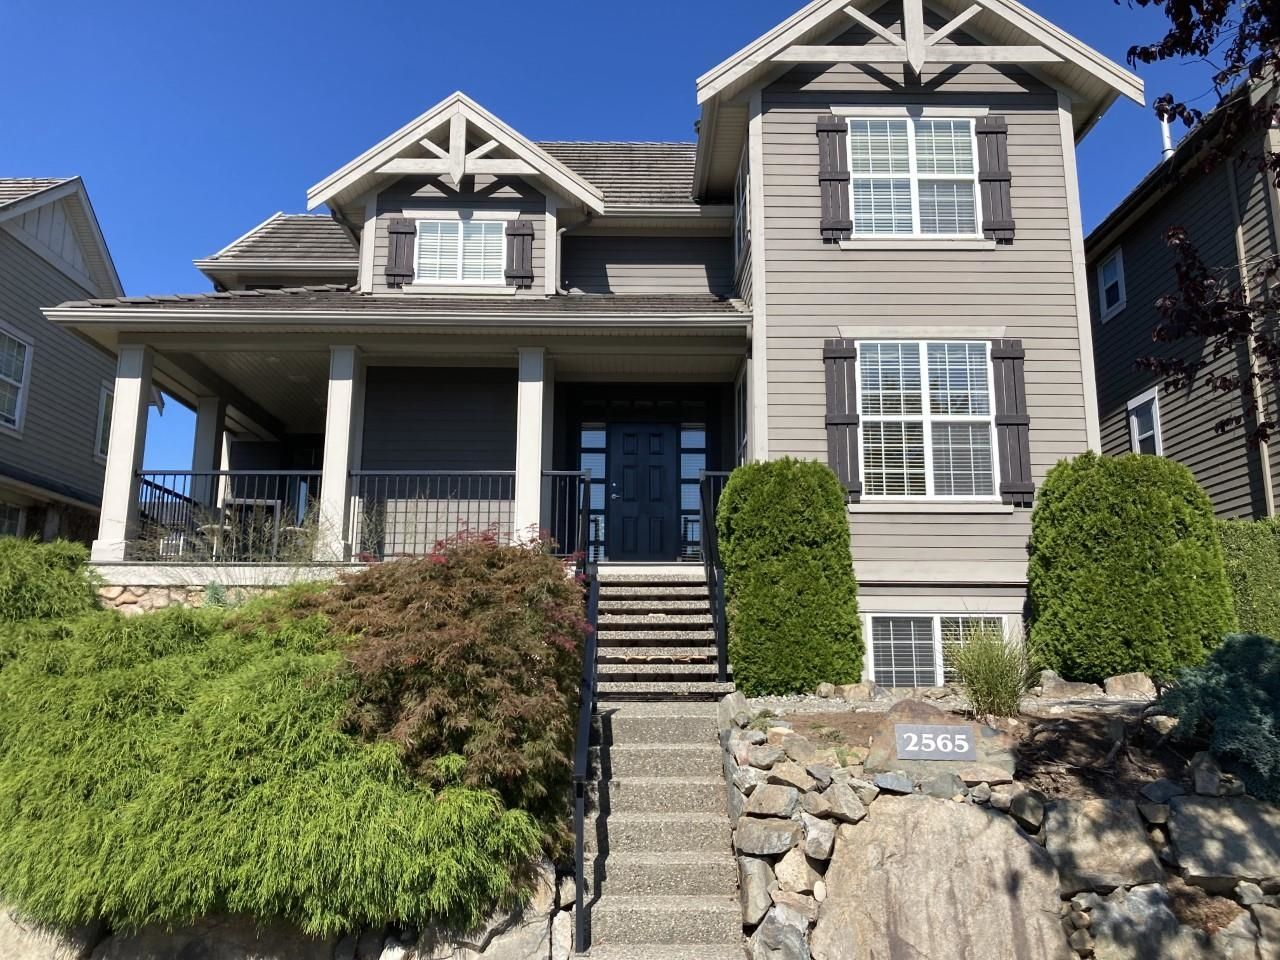 """Main Photo: 2565 EAGLE MOUNTAIN Drive in Abbotsford: Abbotsford East House for sale in """"Eagle Mountian"""" : MLS®# R2613669"""